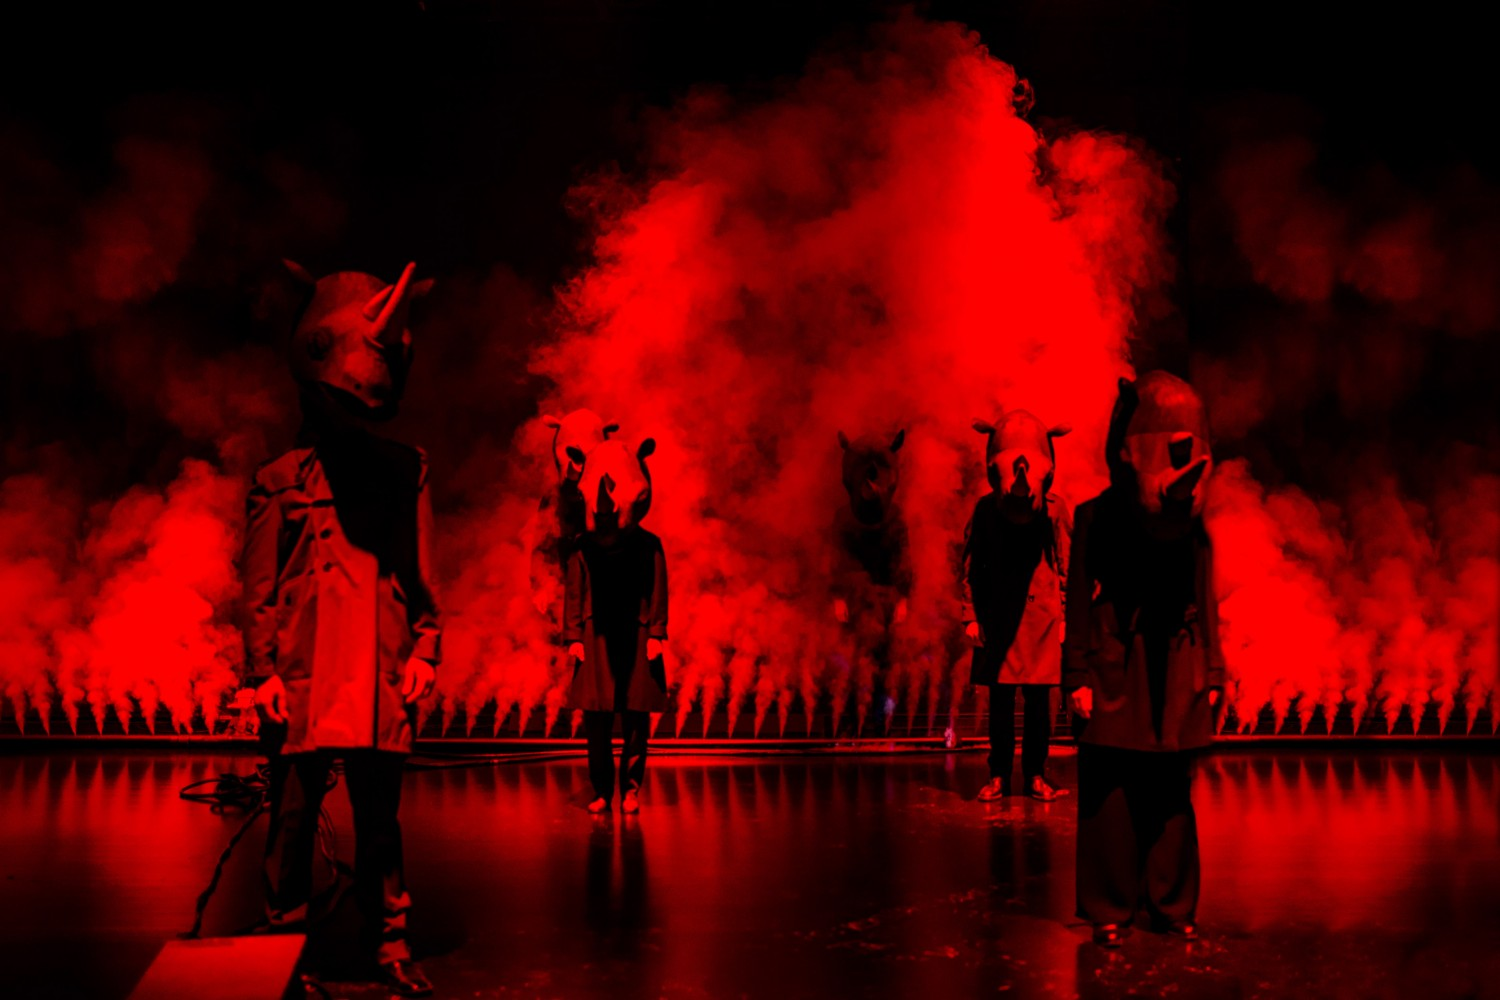 Actors with rhinoceros costumes standing on a stage filled with red light and smoke